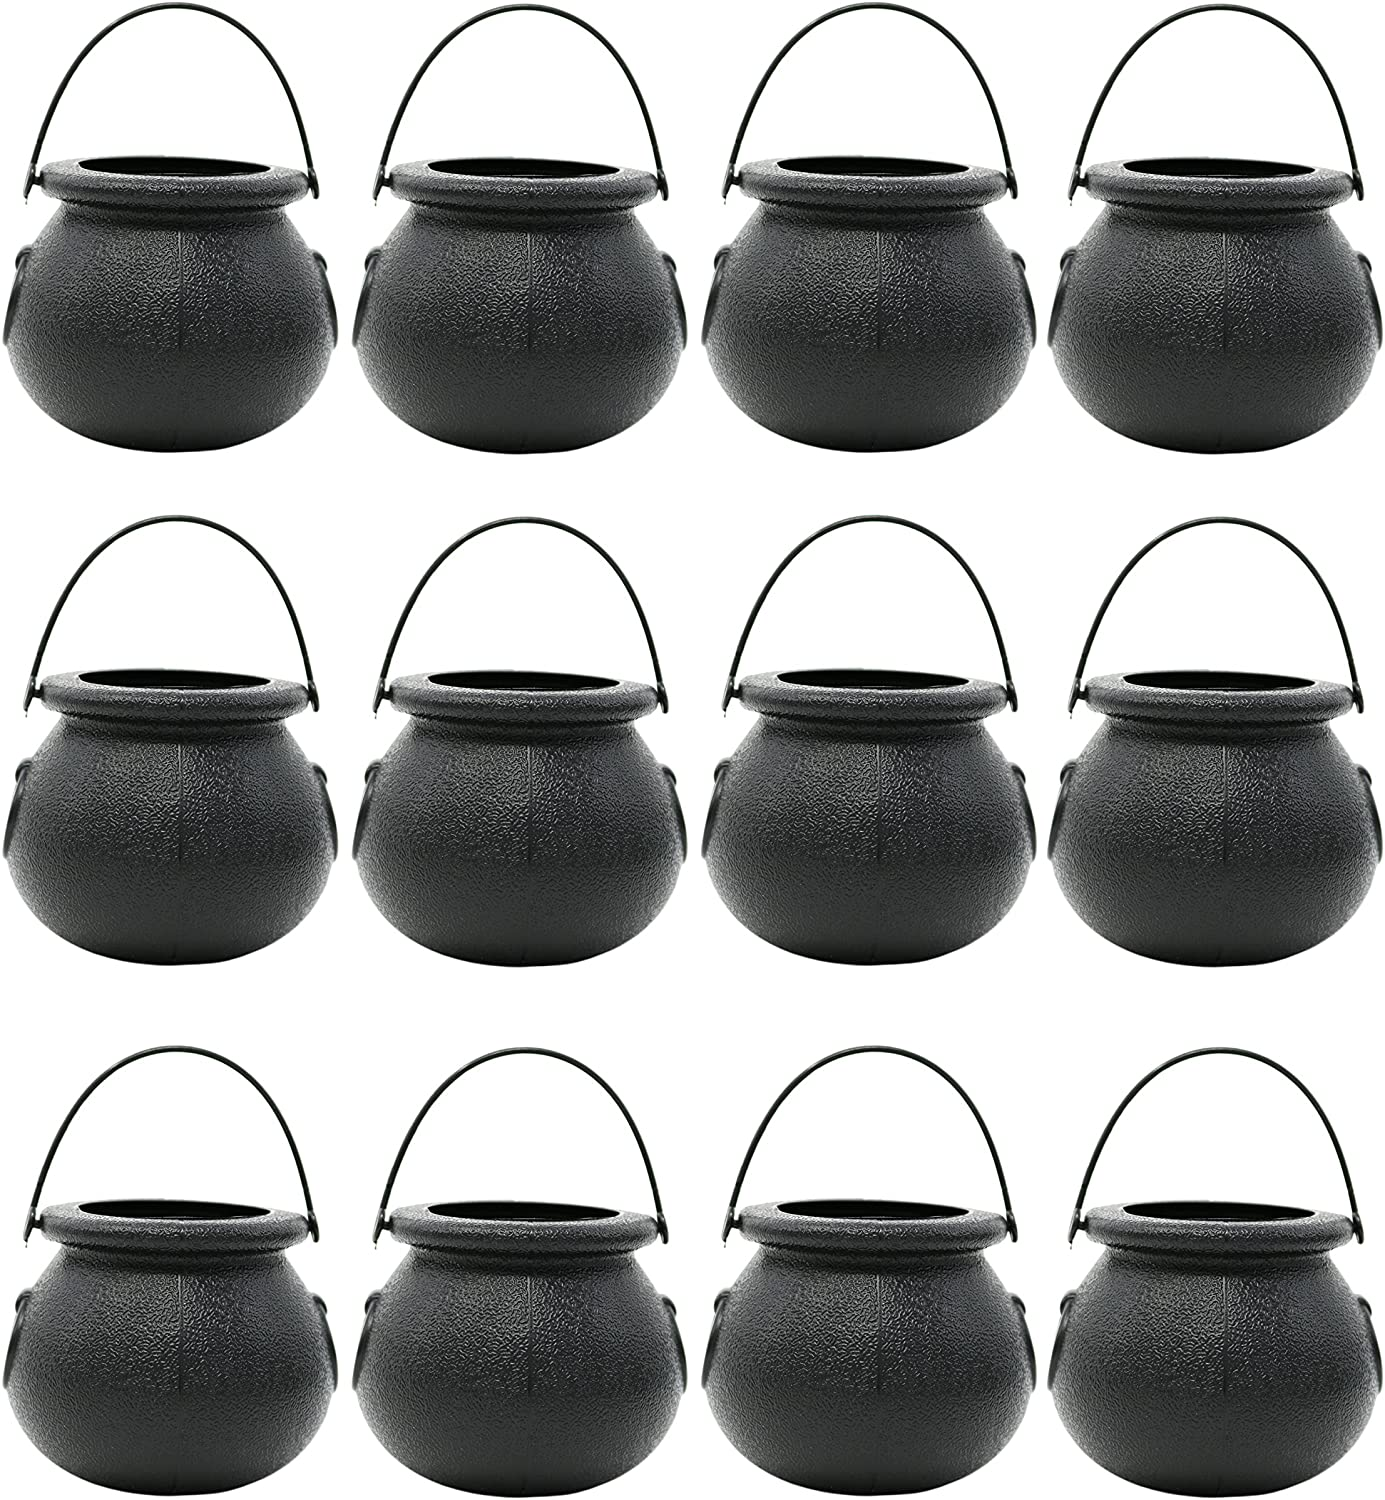 1 Dozen Party Decoration Supplies by Big Mo/'s Toys Candy Cauldron Kettles